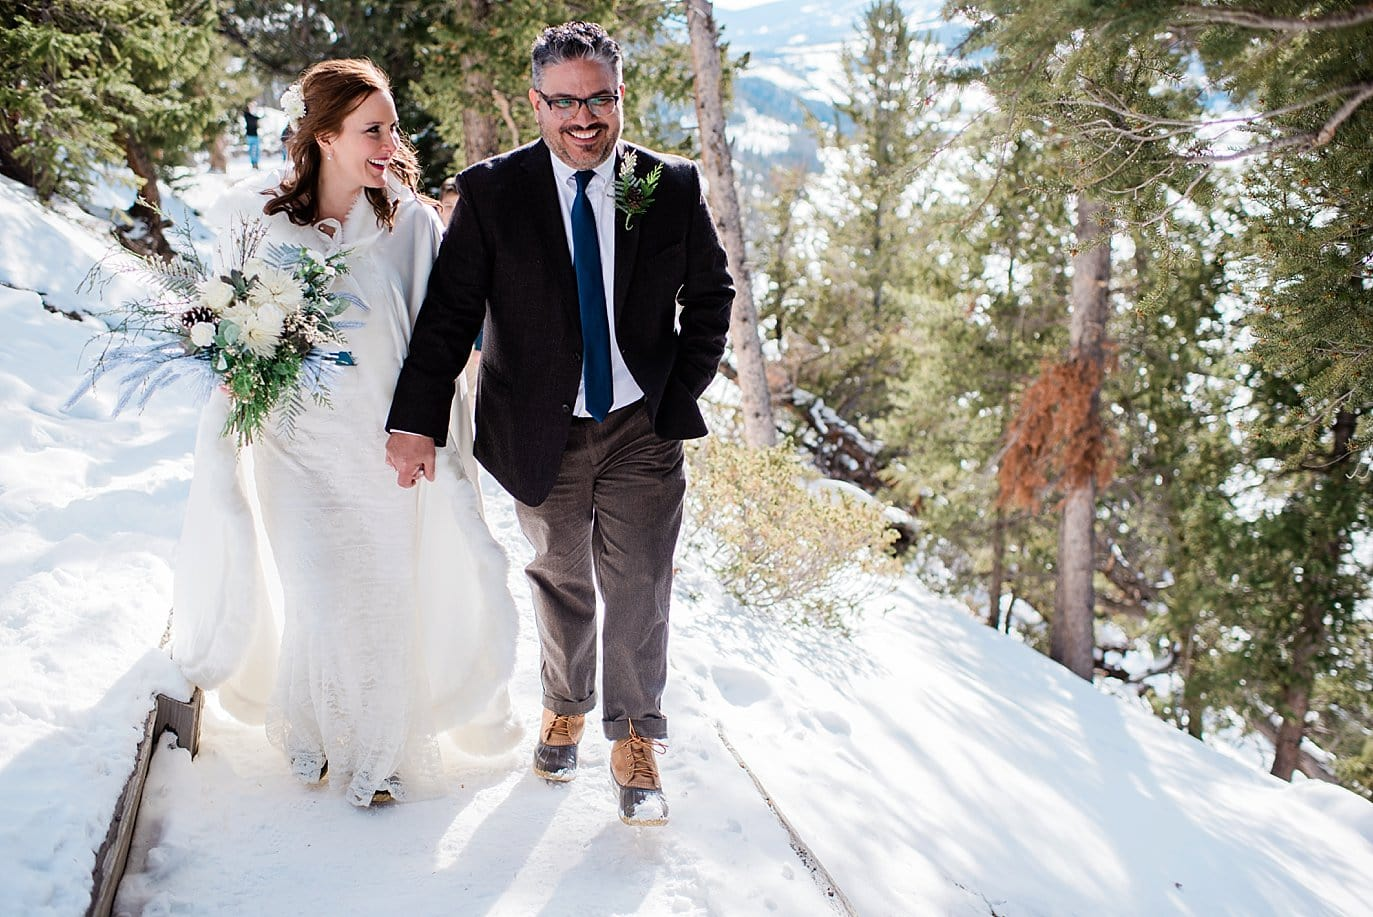 bride and groom walk in snow at Sapphire Point Elopement by Dillon wedding photographer Jennie Crate Photographer